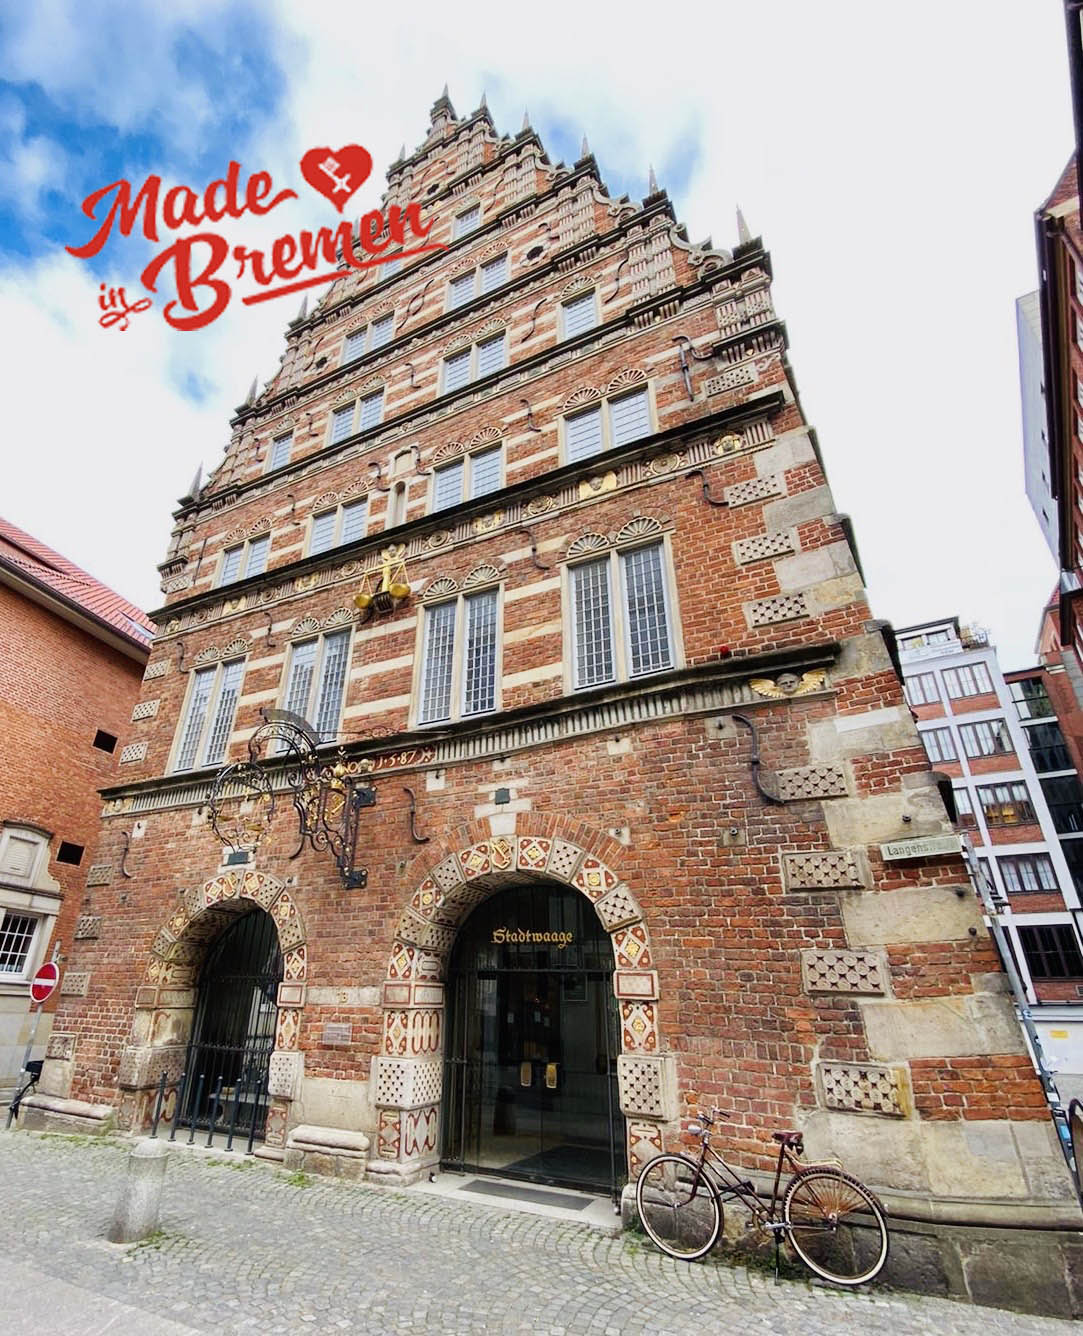 Made in Bremen Store